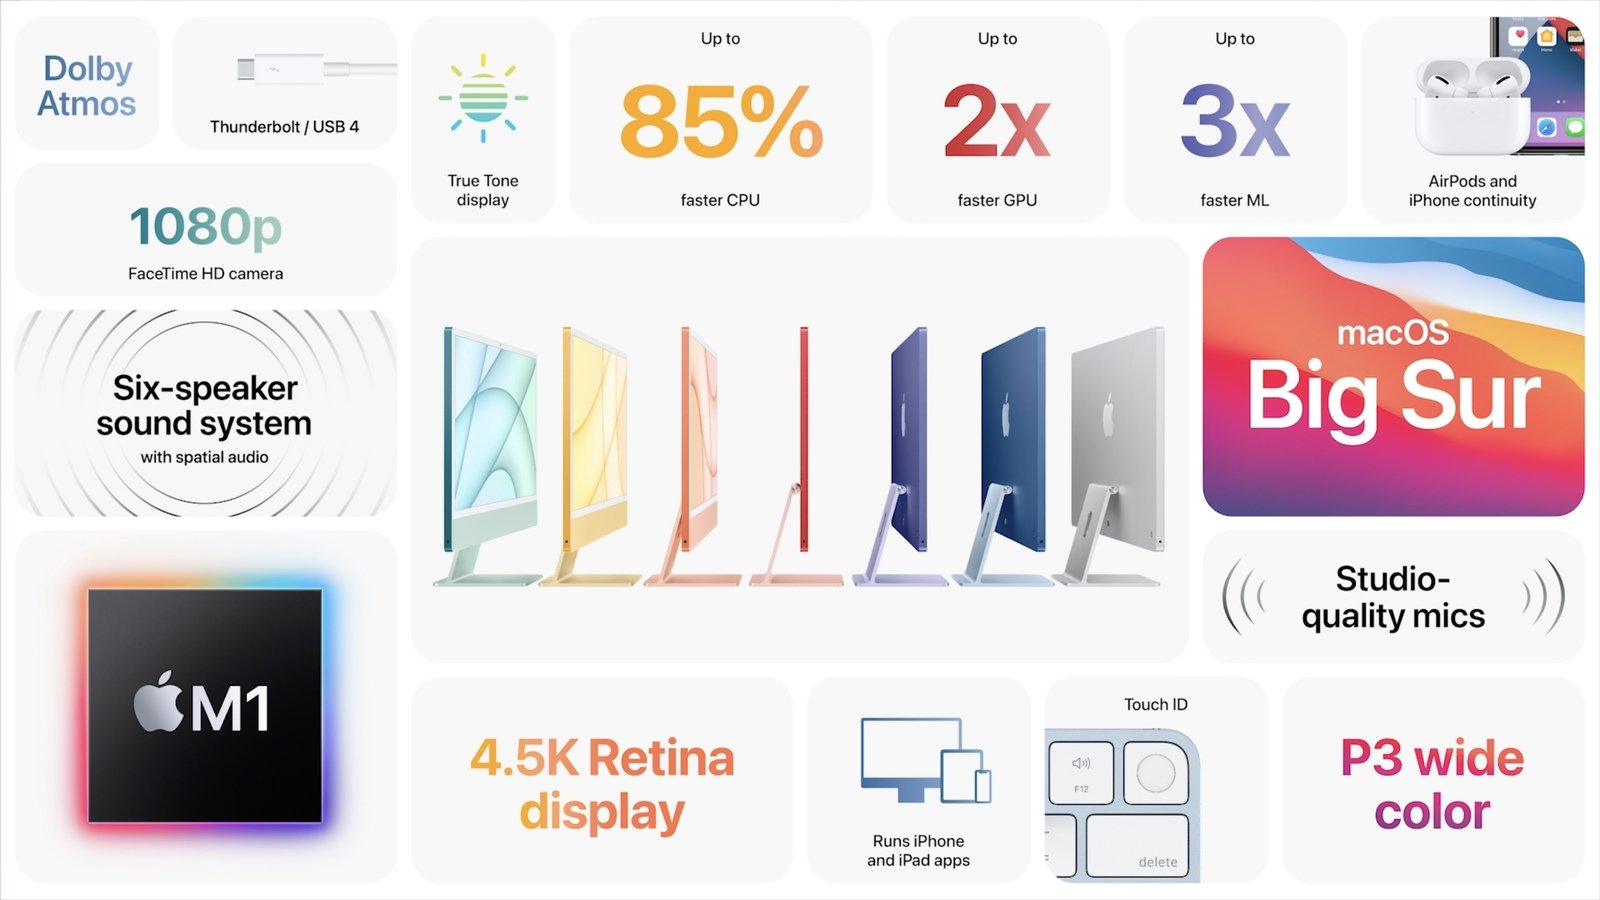 10:53 - iMac 2021 - Specification And Features